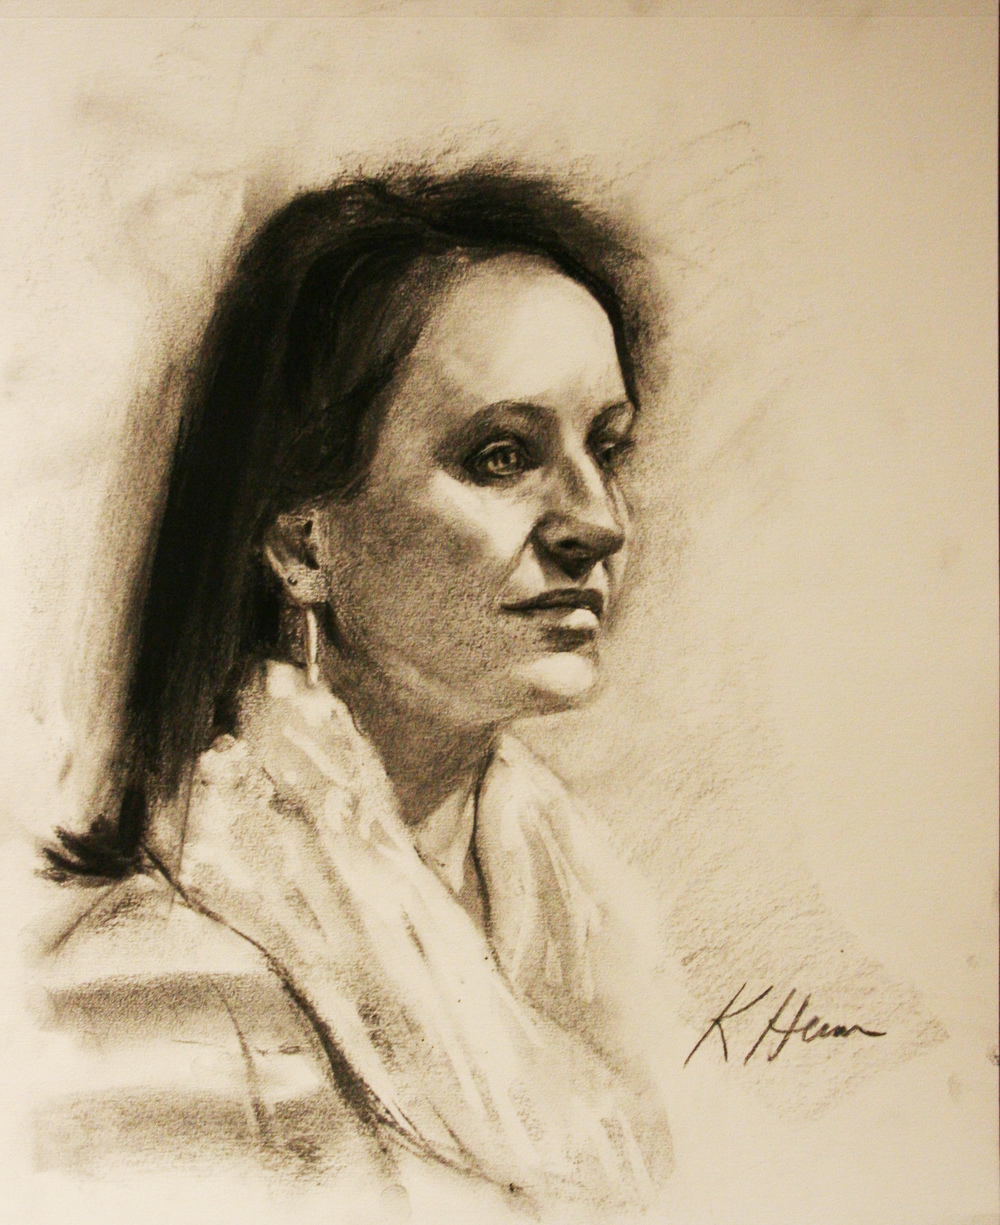 Kathryn Heim did this 3-hour drawing.